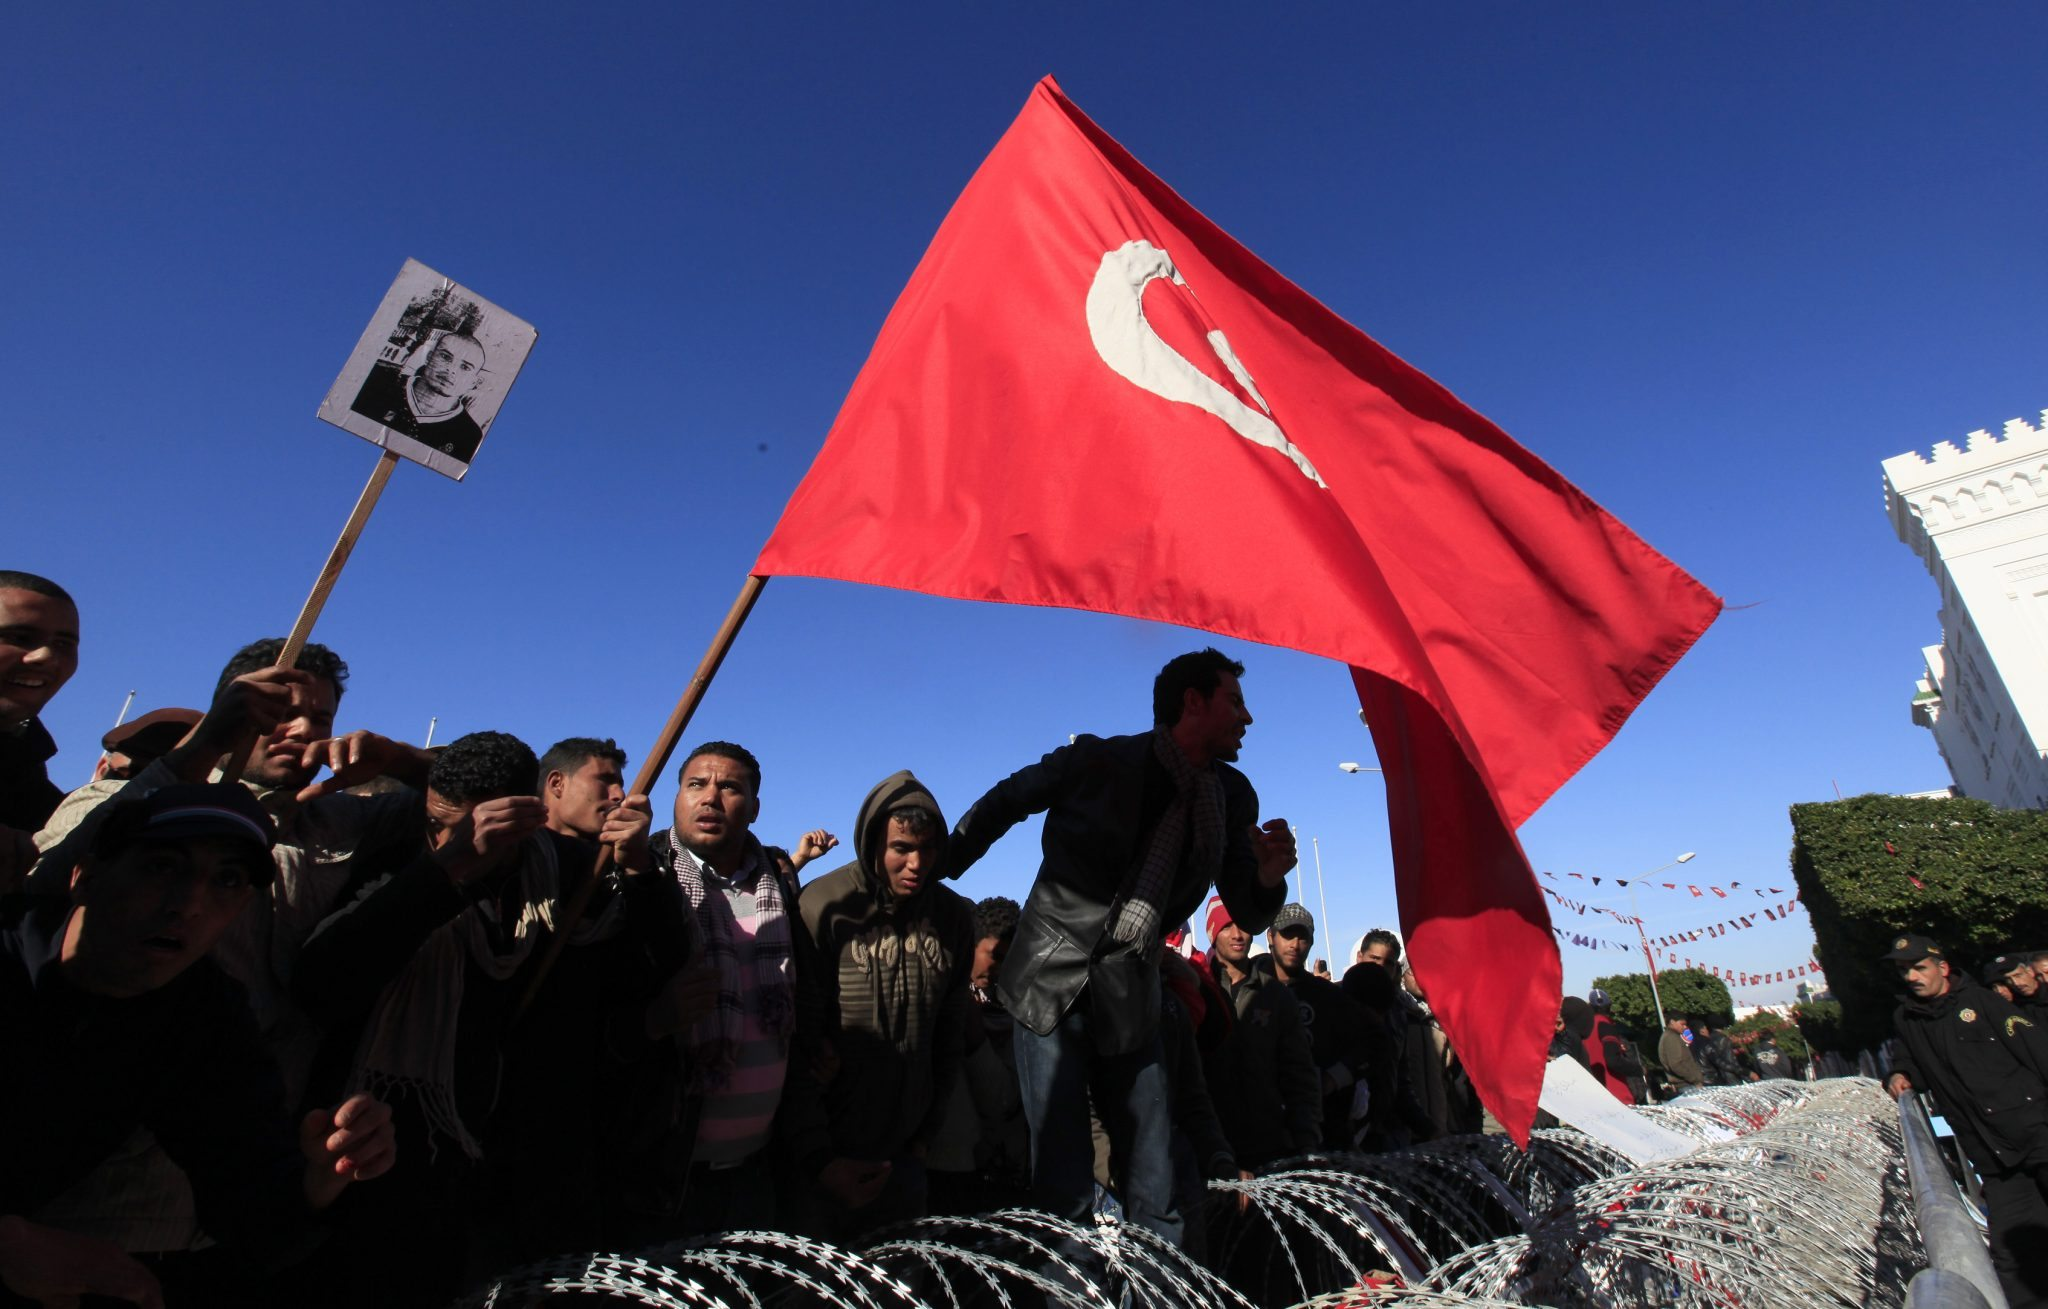 Protesters from Tunisia's poor rural heartlands chant slogans during a Tunisian Revolution REUTERS